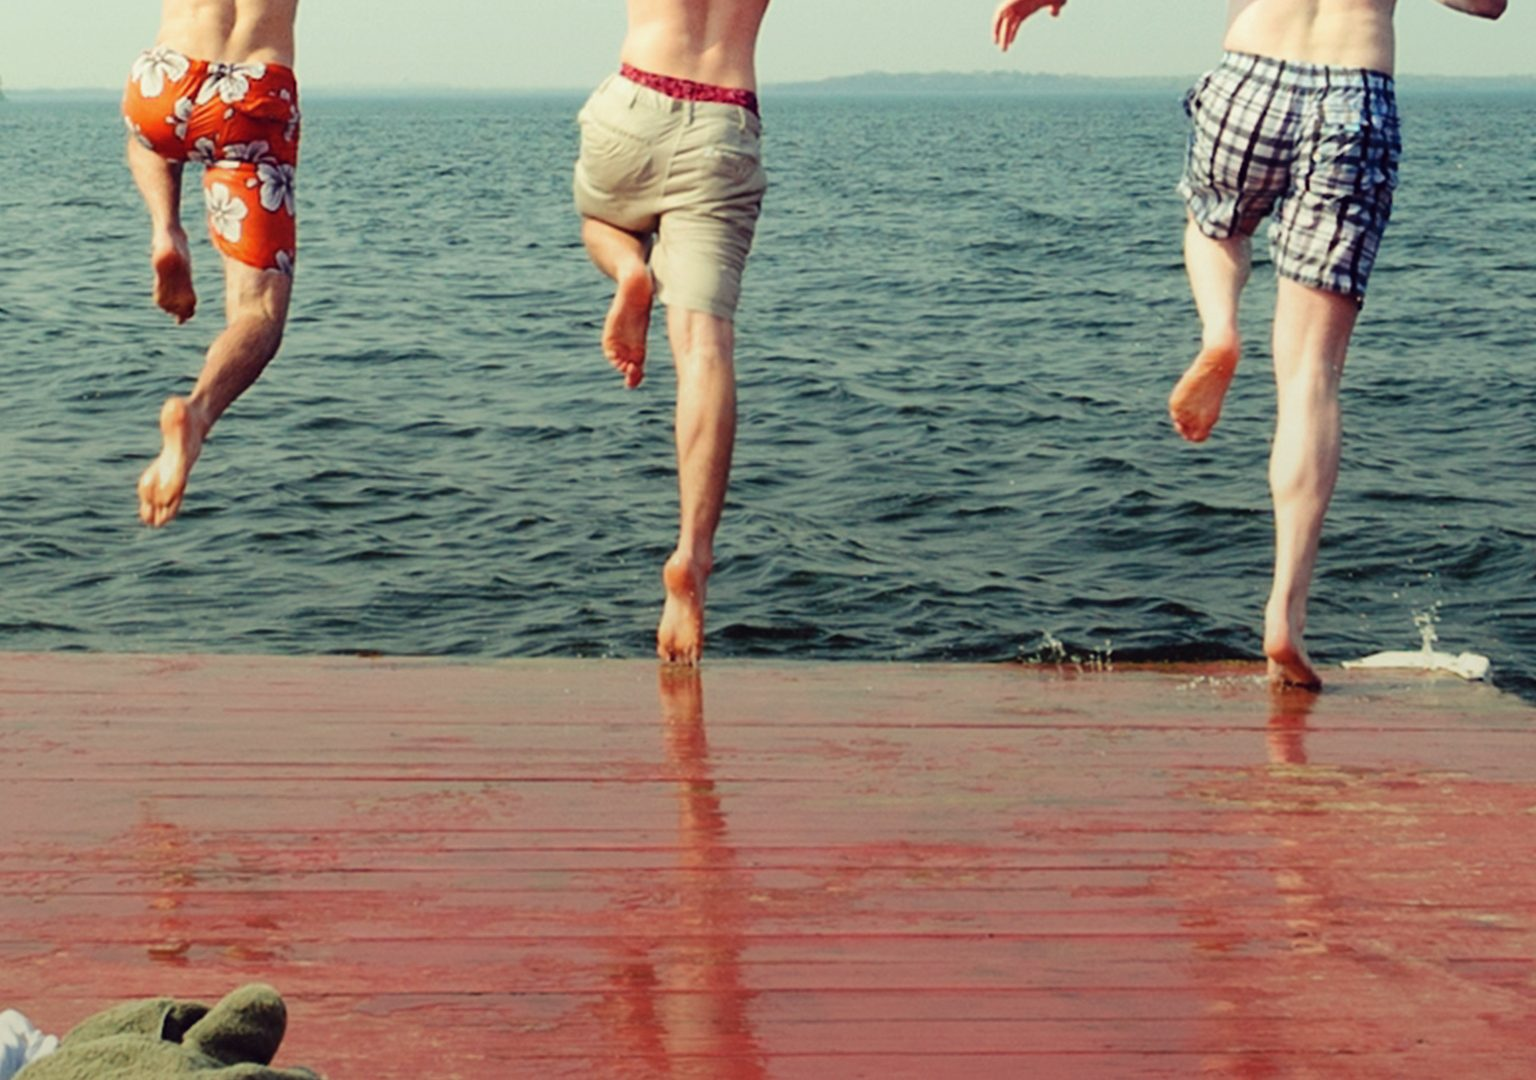 Action shot of three young men about to jump off edge of dock into lake